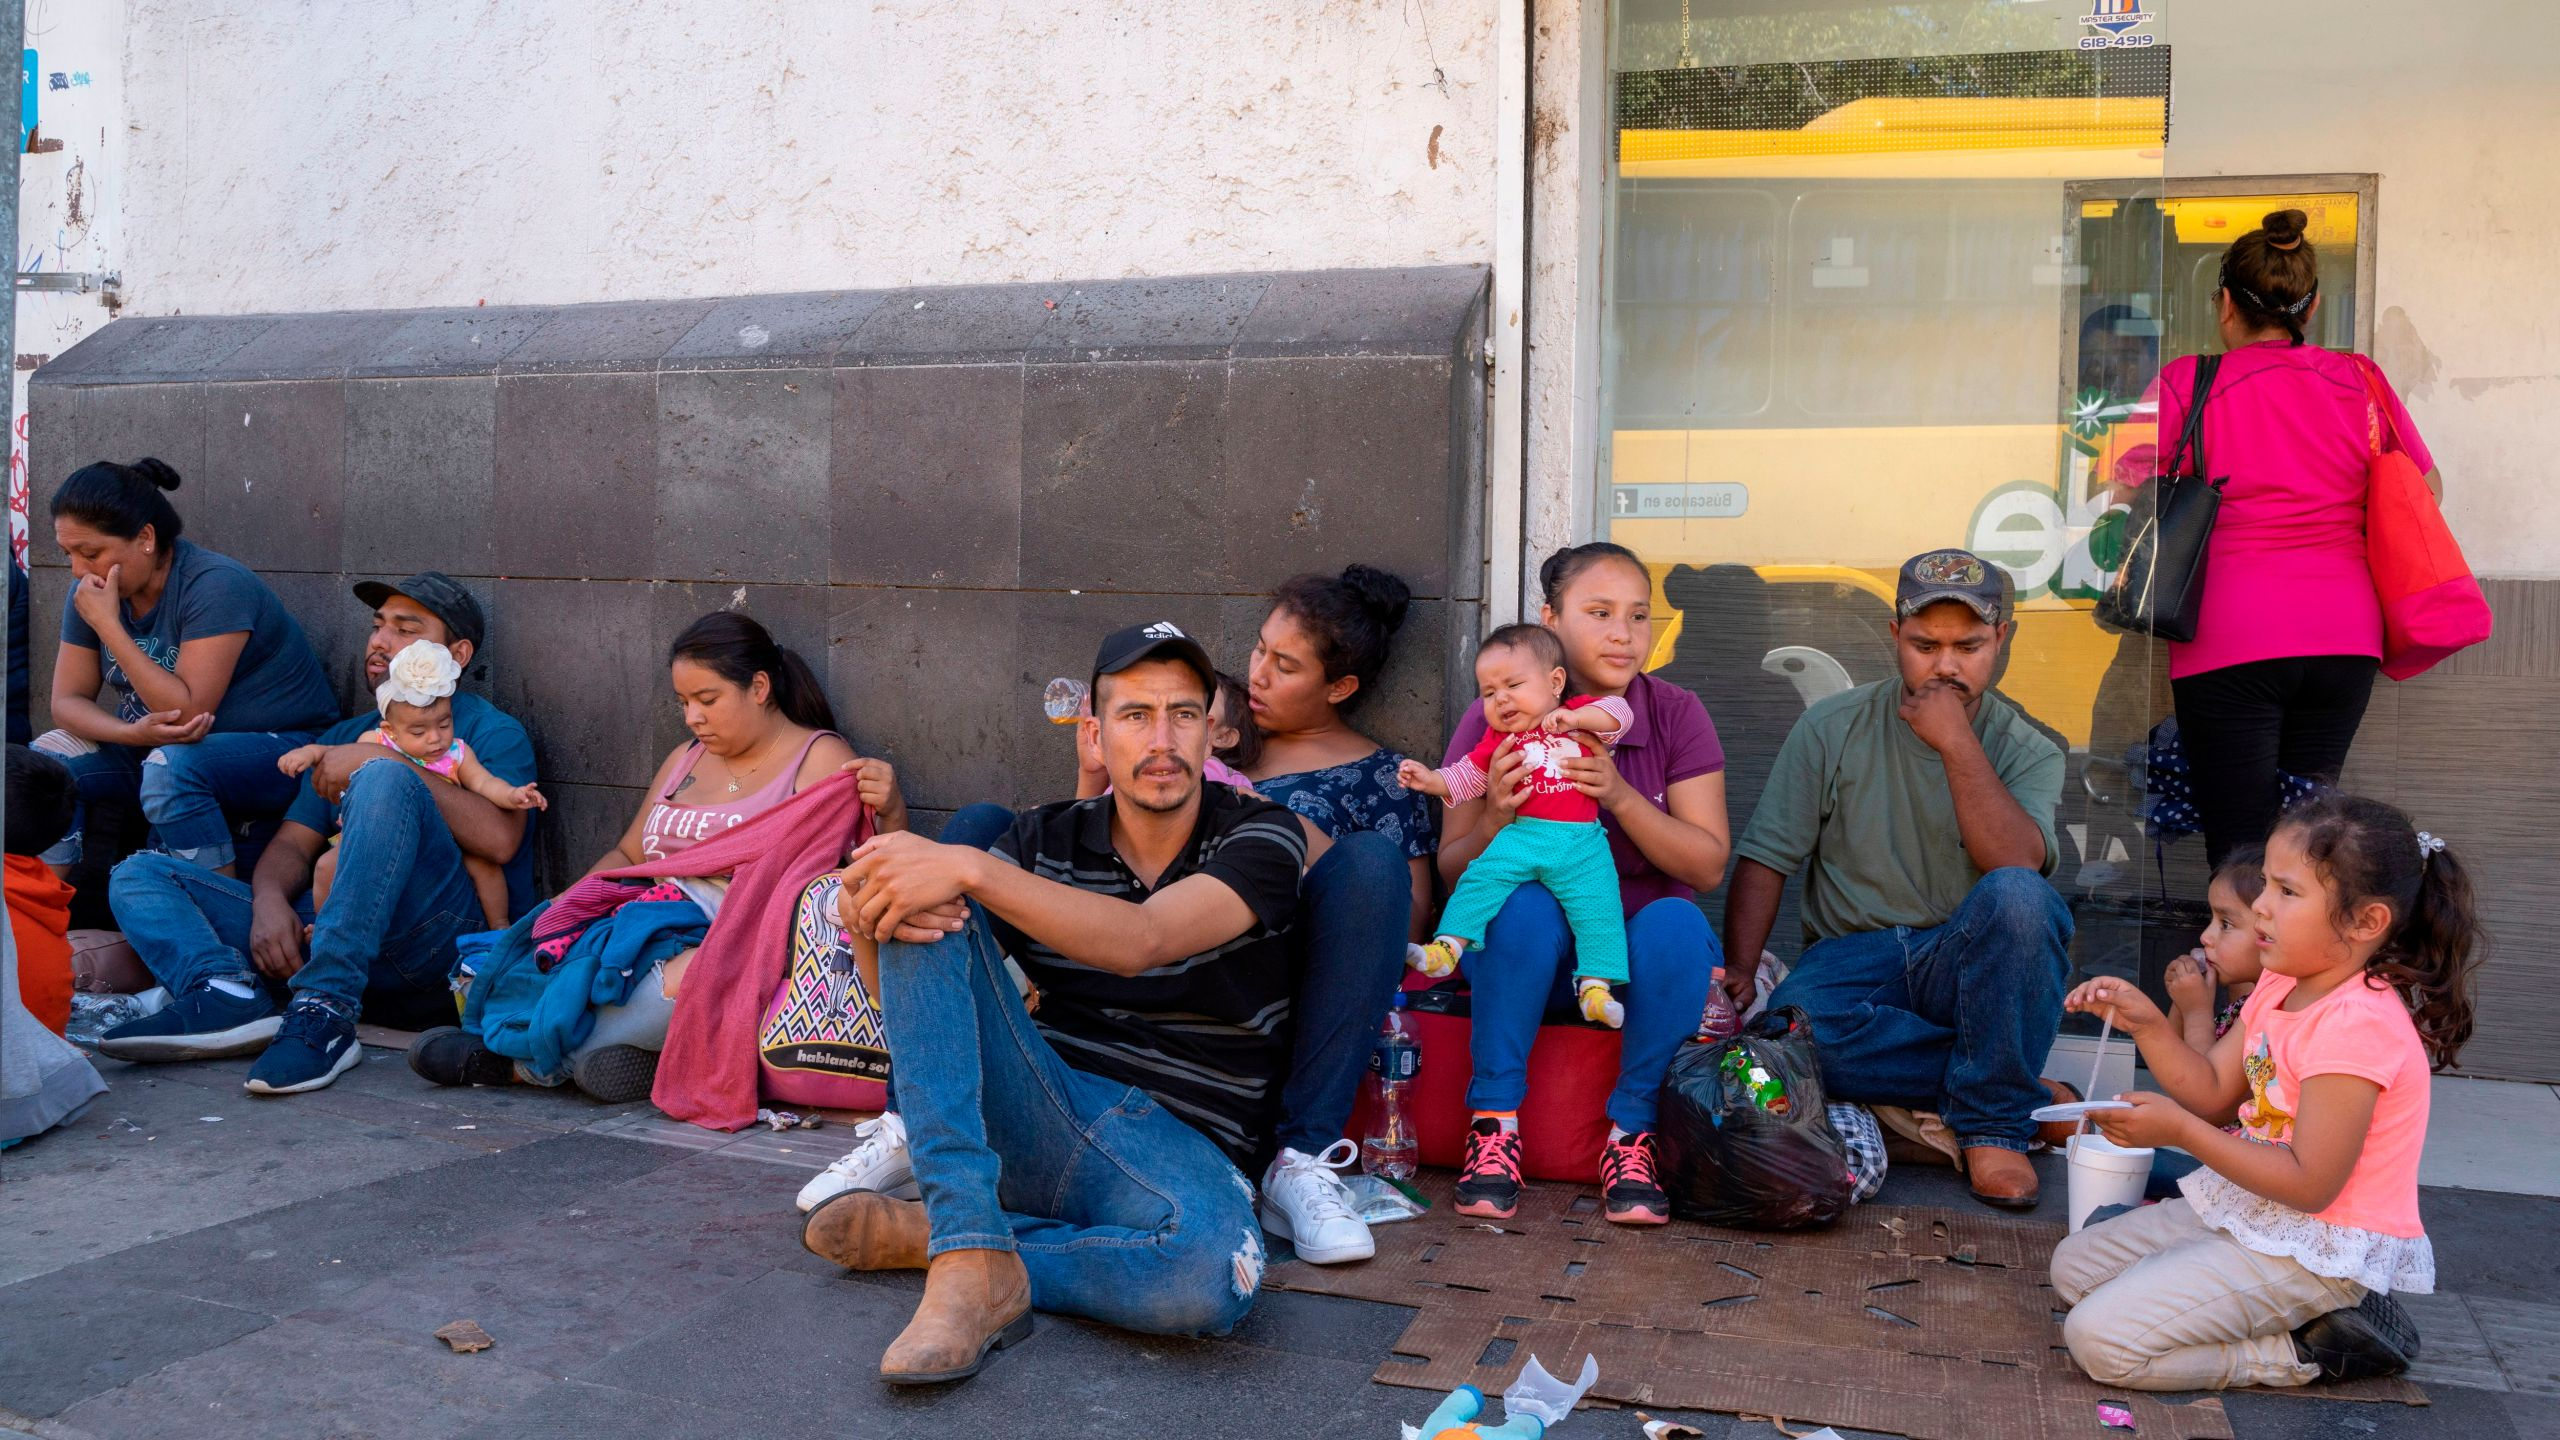 Migrants, mostly from Mexico, are pictured sitting on the ground waiting near the Paso del Norte Bridge at the Mexico-US border, in Ciudad Juarez, Mexico, on September 12, 2019. (Credit: PAUL RATJE/AFP/Getty Images)